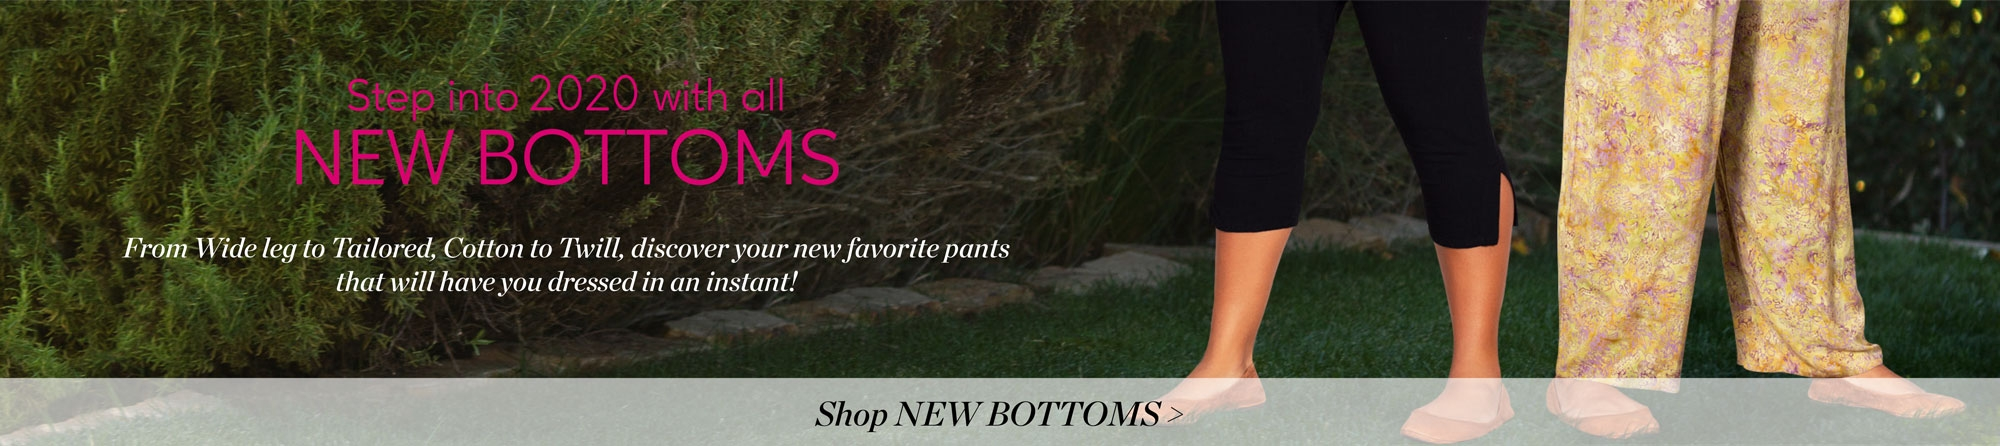 Shop All New Plus Size Bottoms - From Wide Leg to Tailored, Cotton to Twill - 4X to 8X Women's Plus Size Clothing on SALE